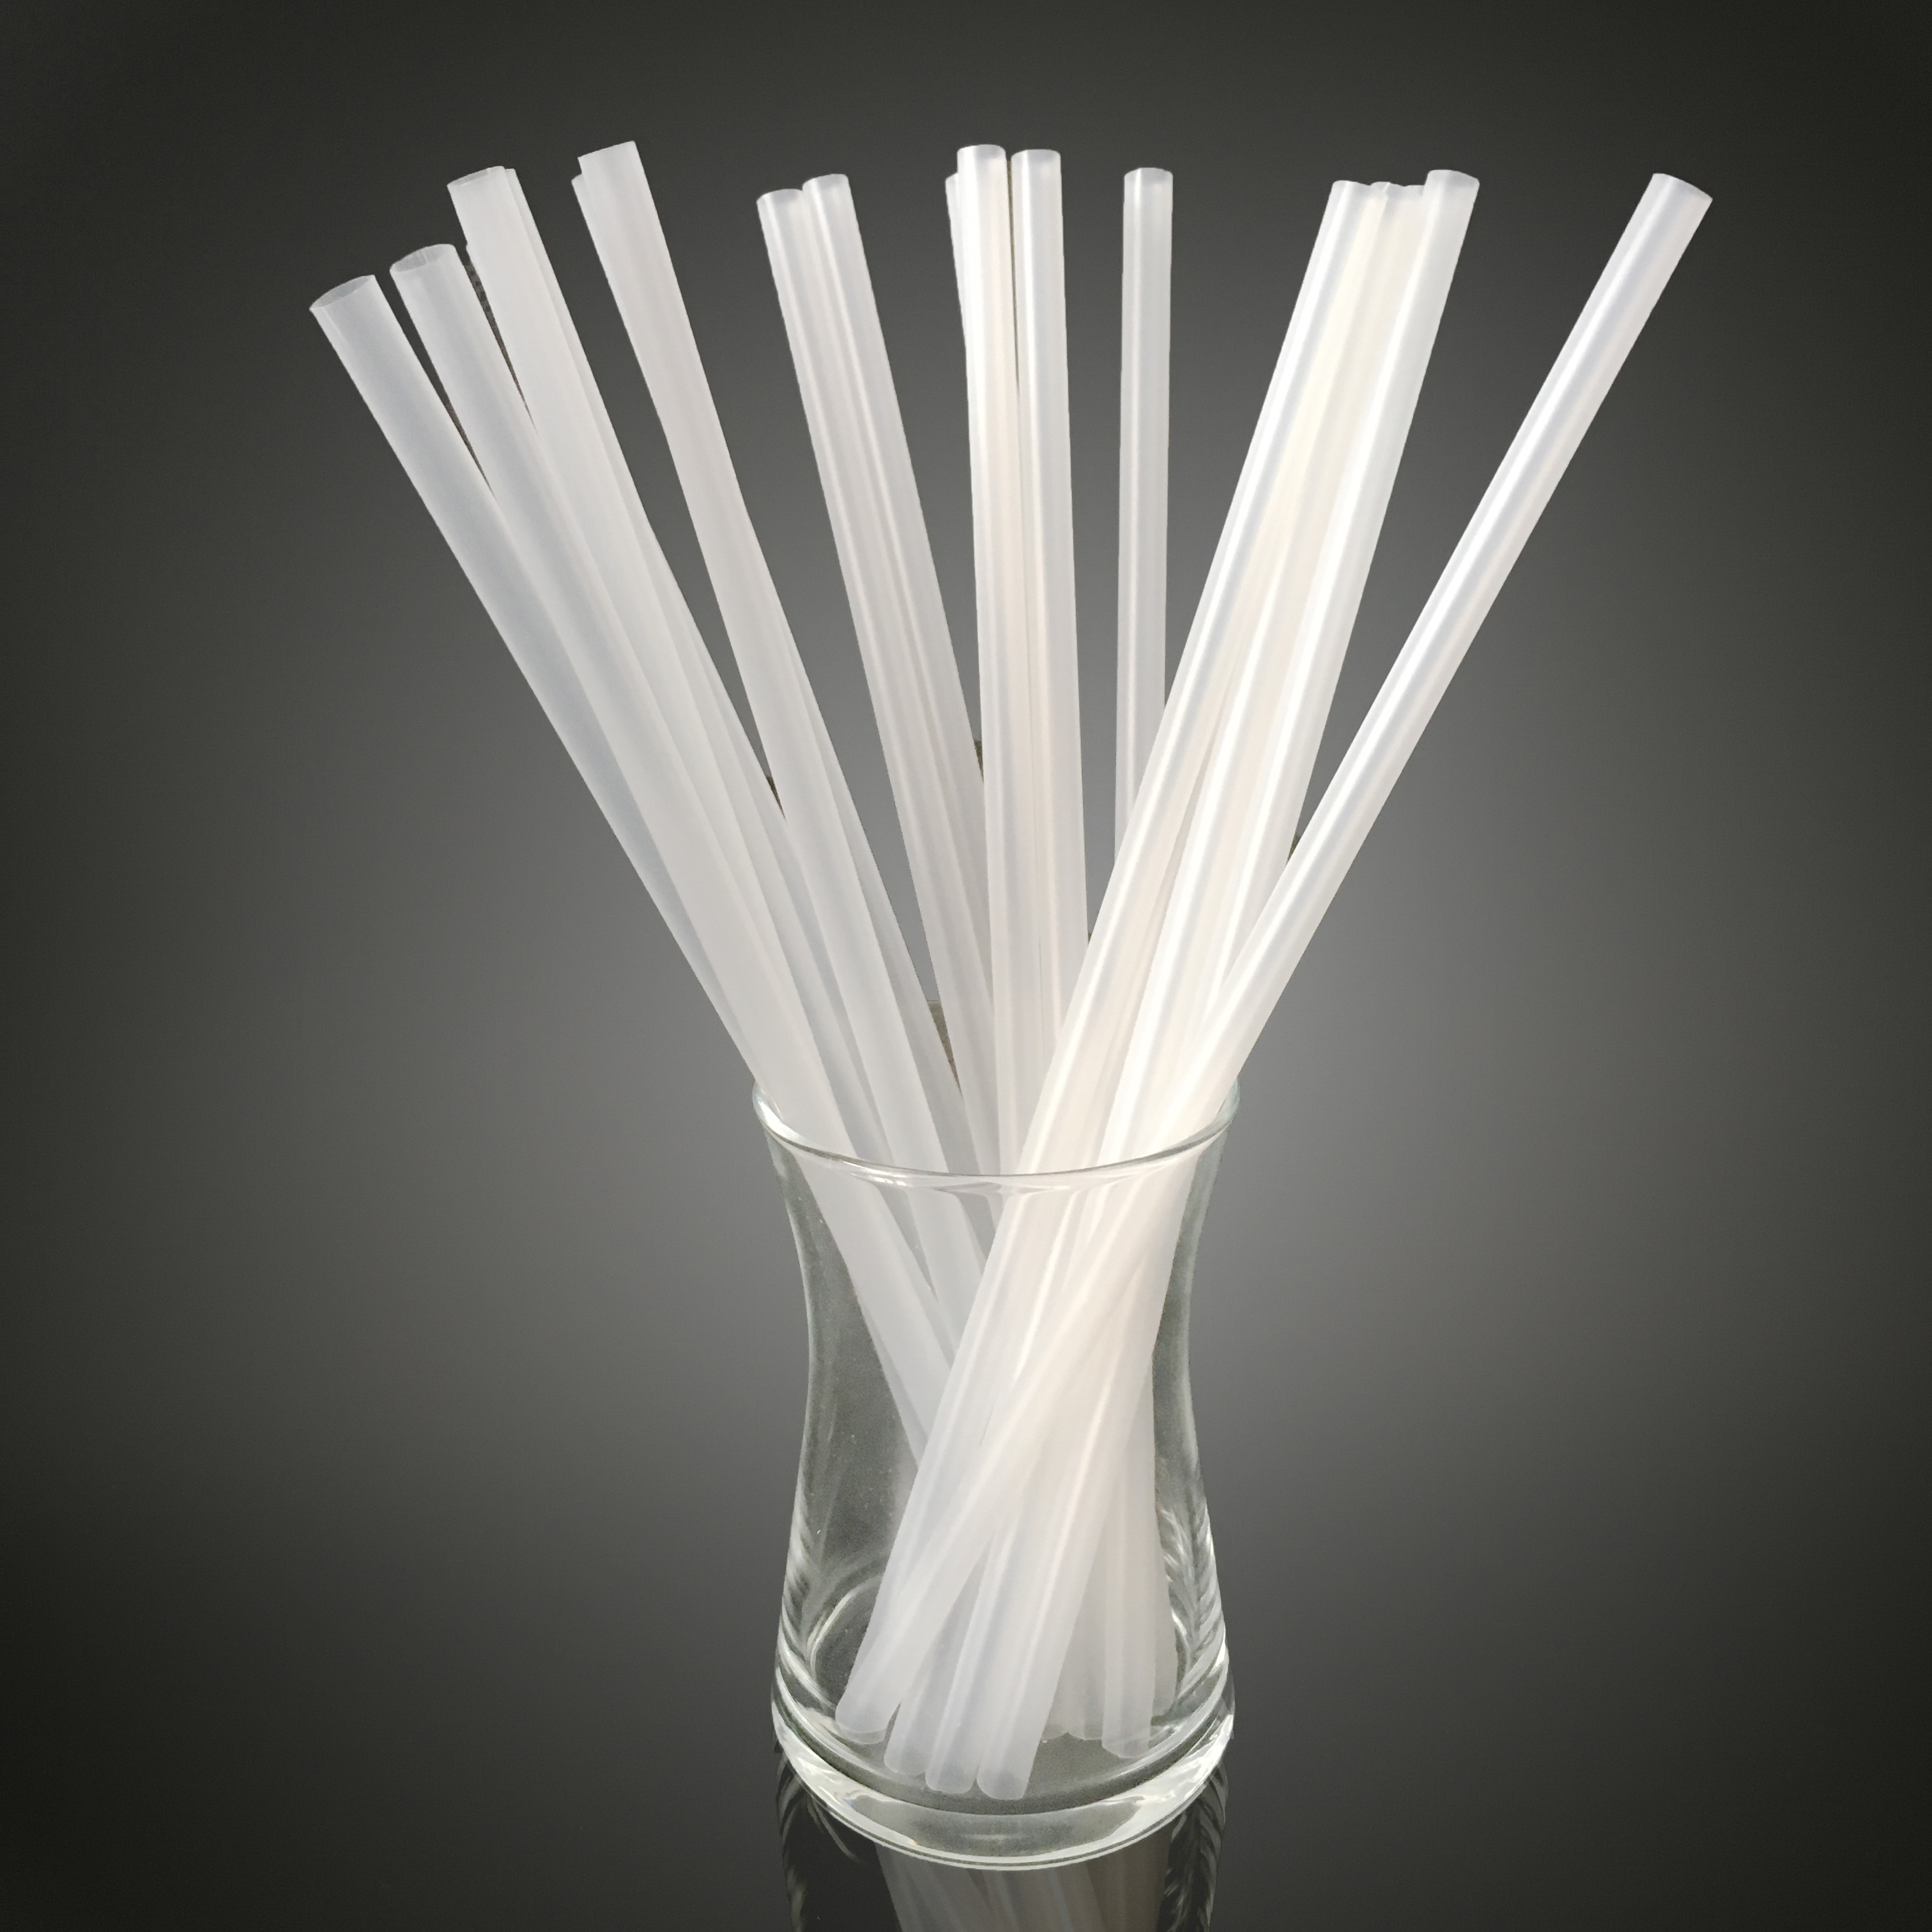 6mm 7mm Enviroment friendly Biodegradable disposable Compostible Biodegradable Renewable Corn Starch Based PLA straw for drink